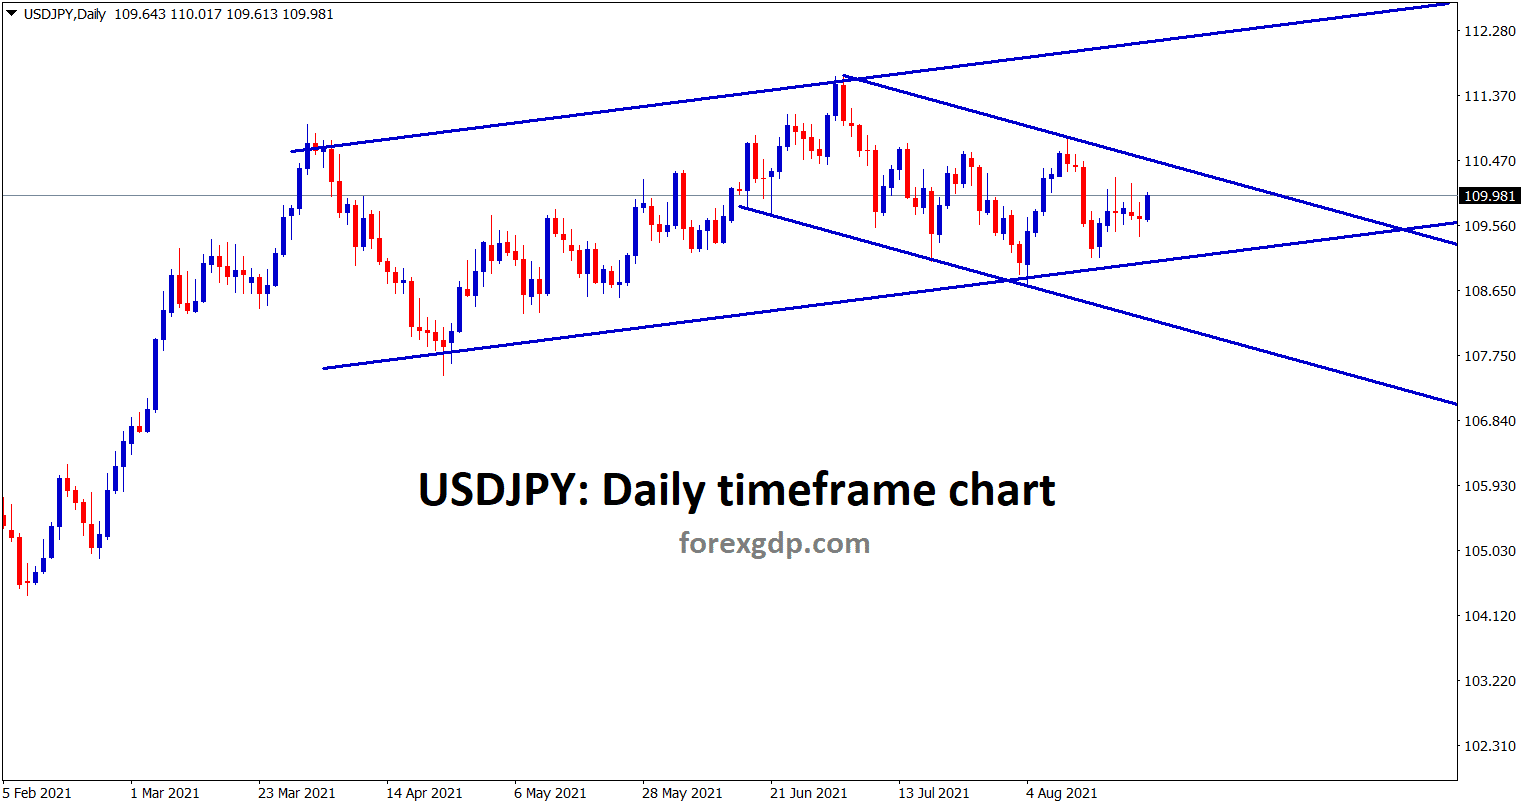 USDJPY is still moving between the channel ranges for a long time